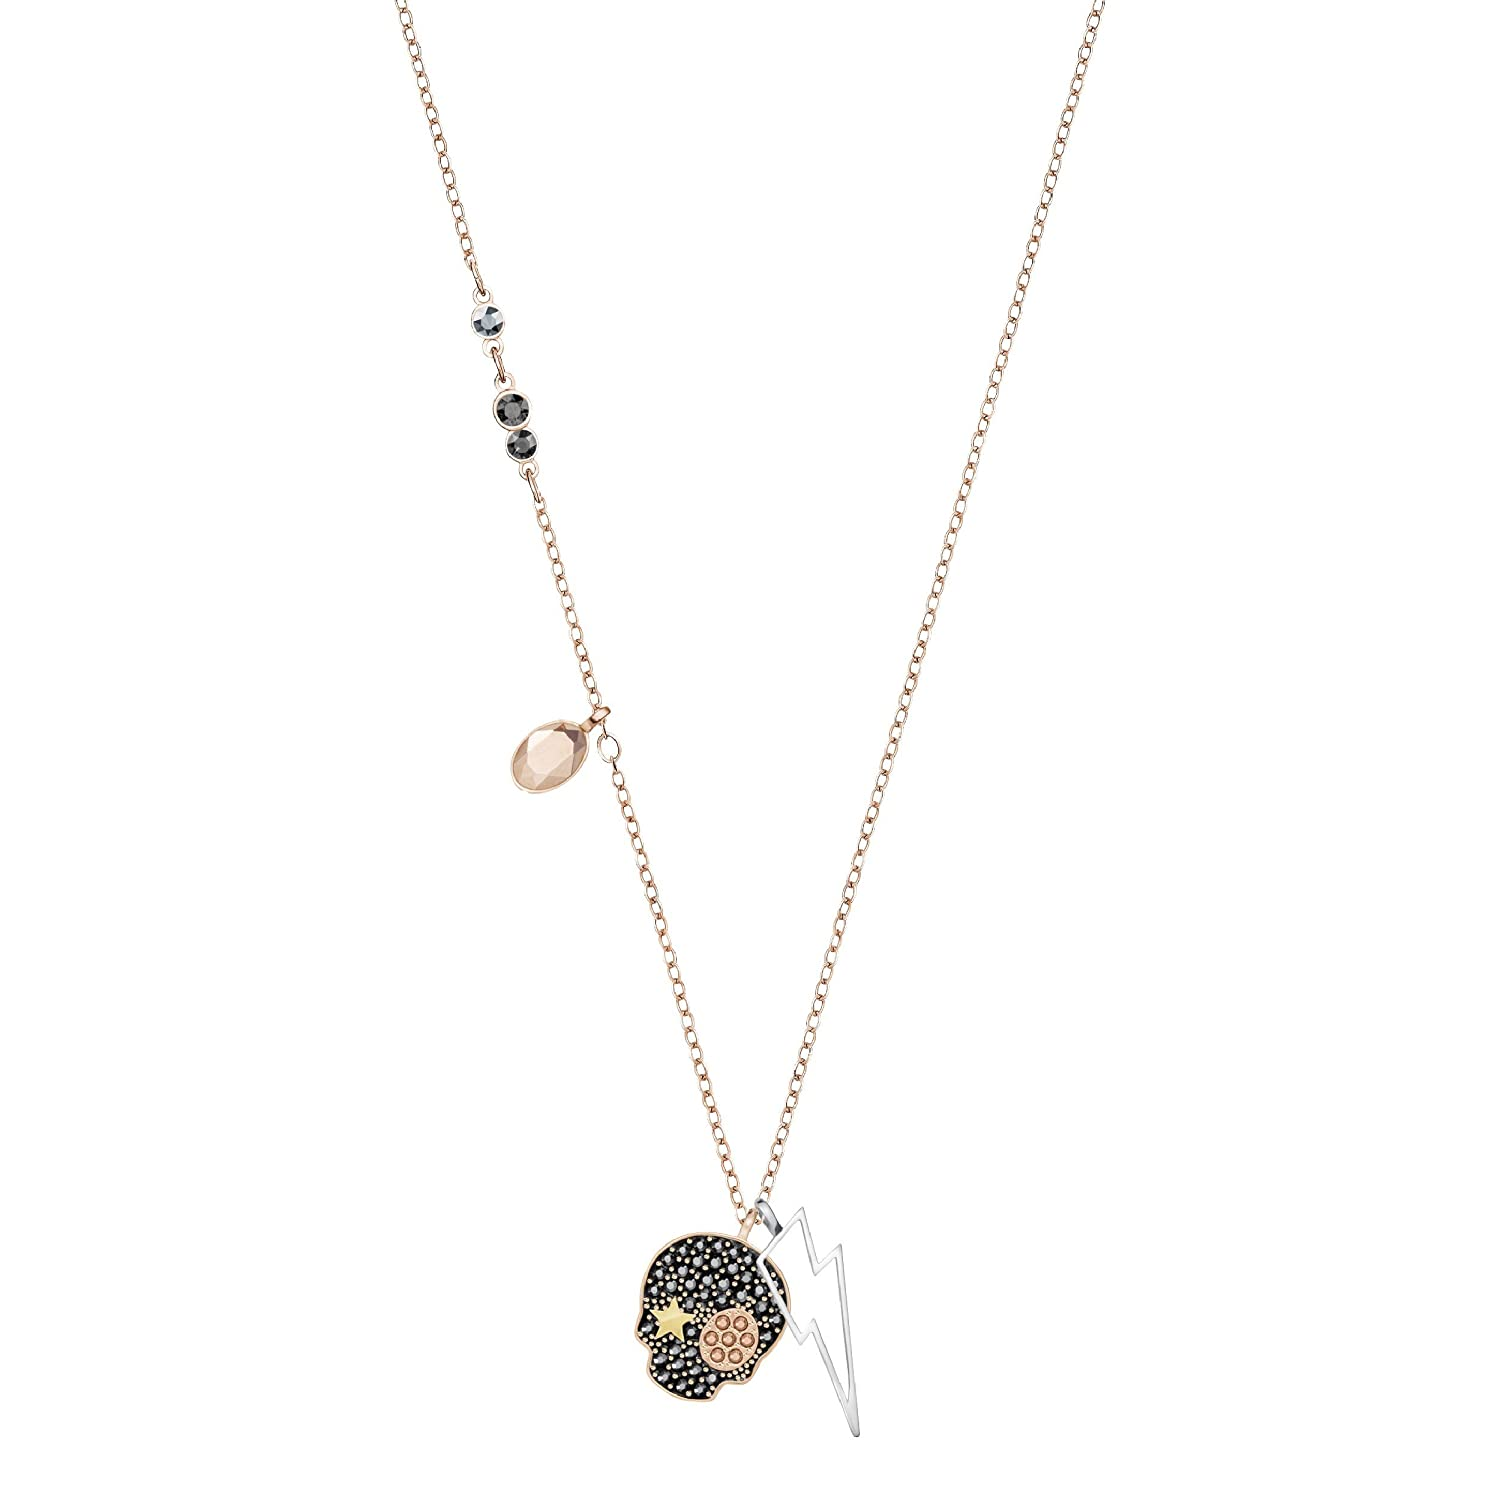 04e2ee53336ac Swarovski Duo Skull Necklace, Multi-Colored, Mixed Plating